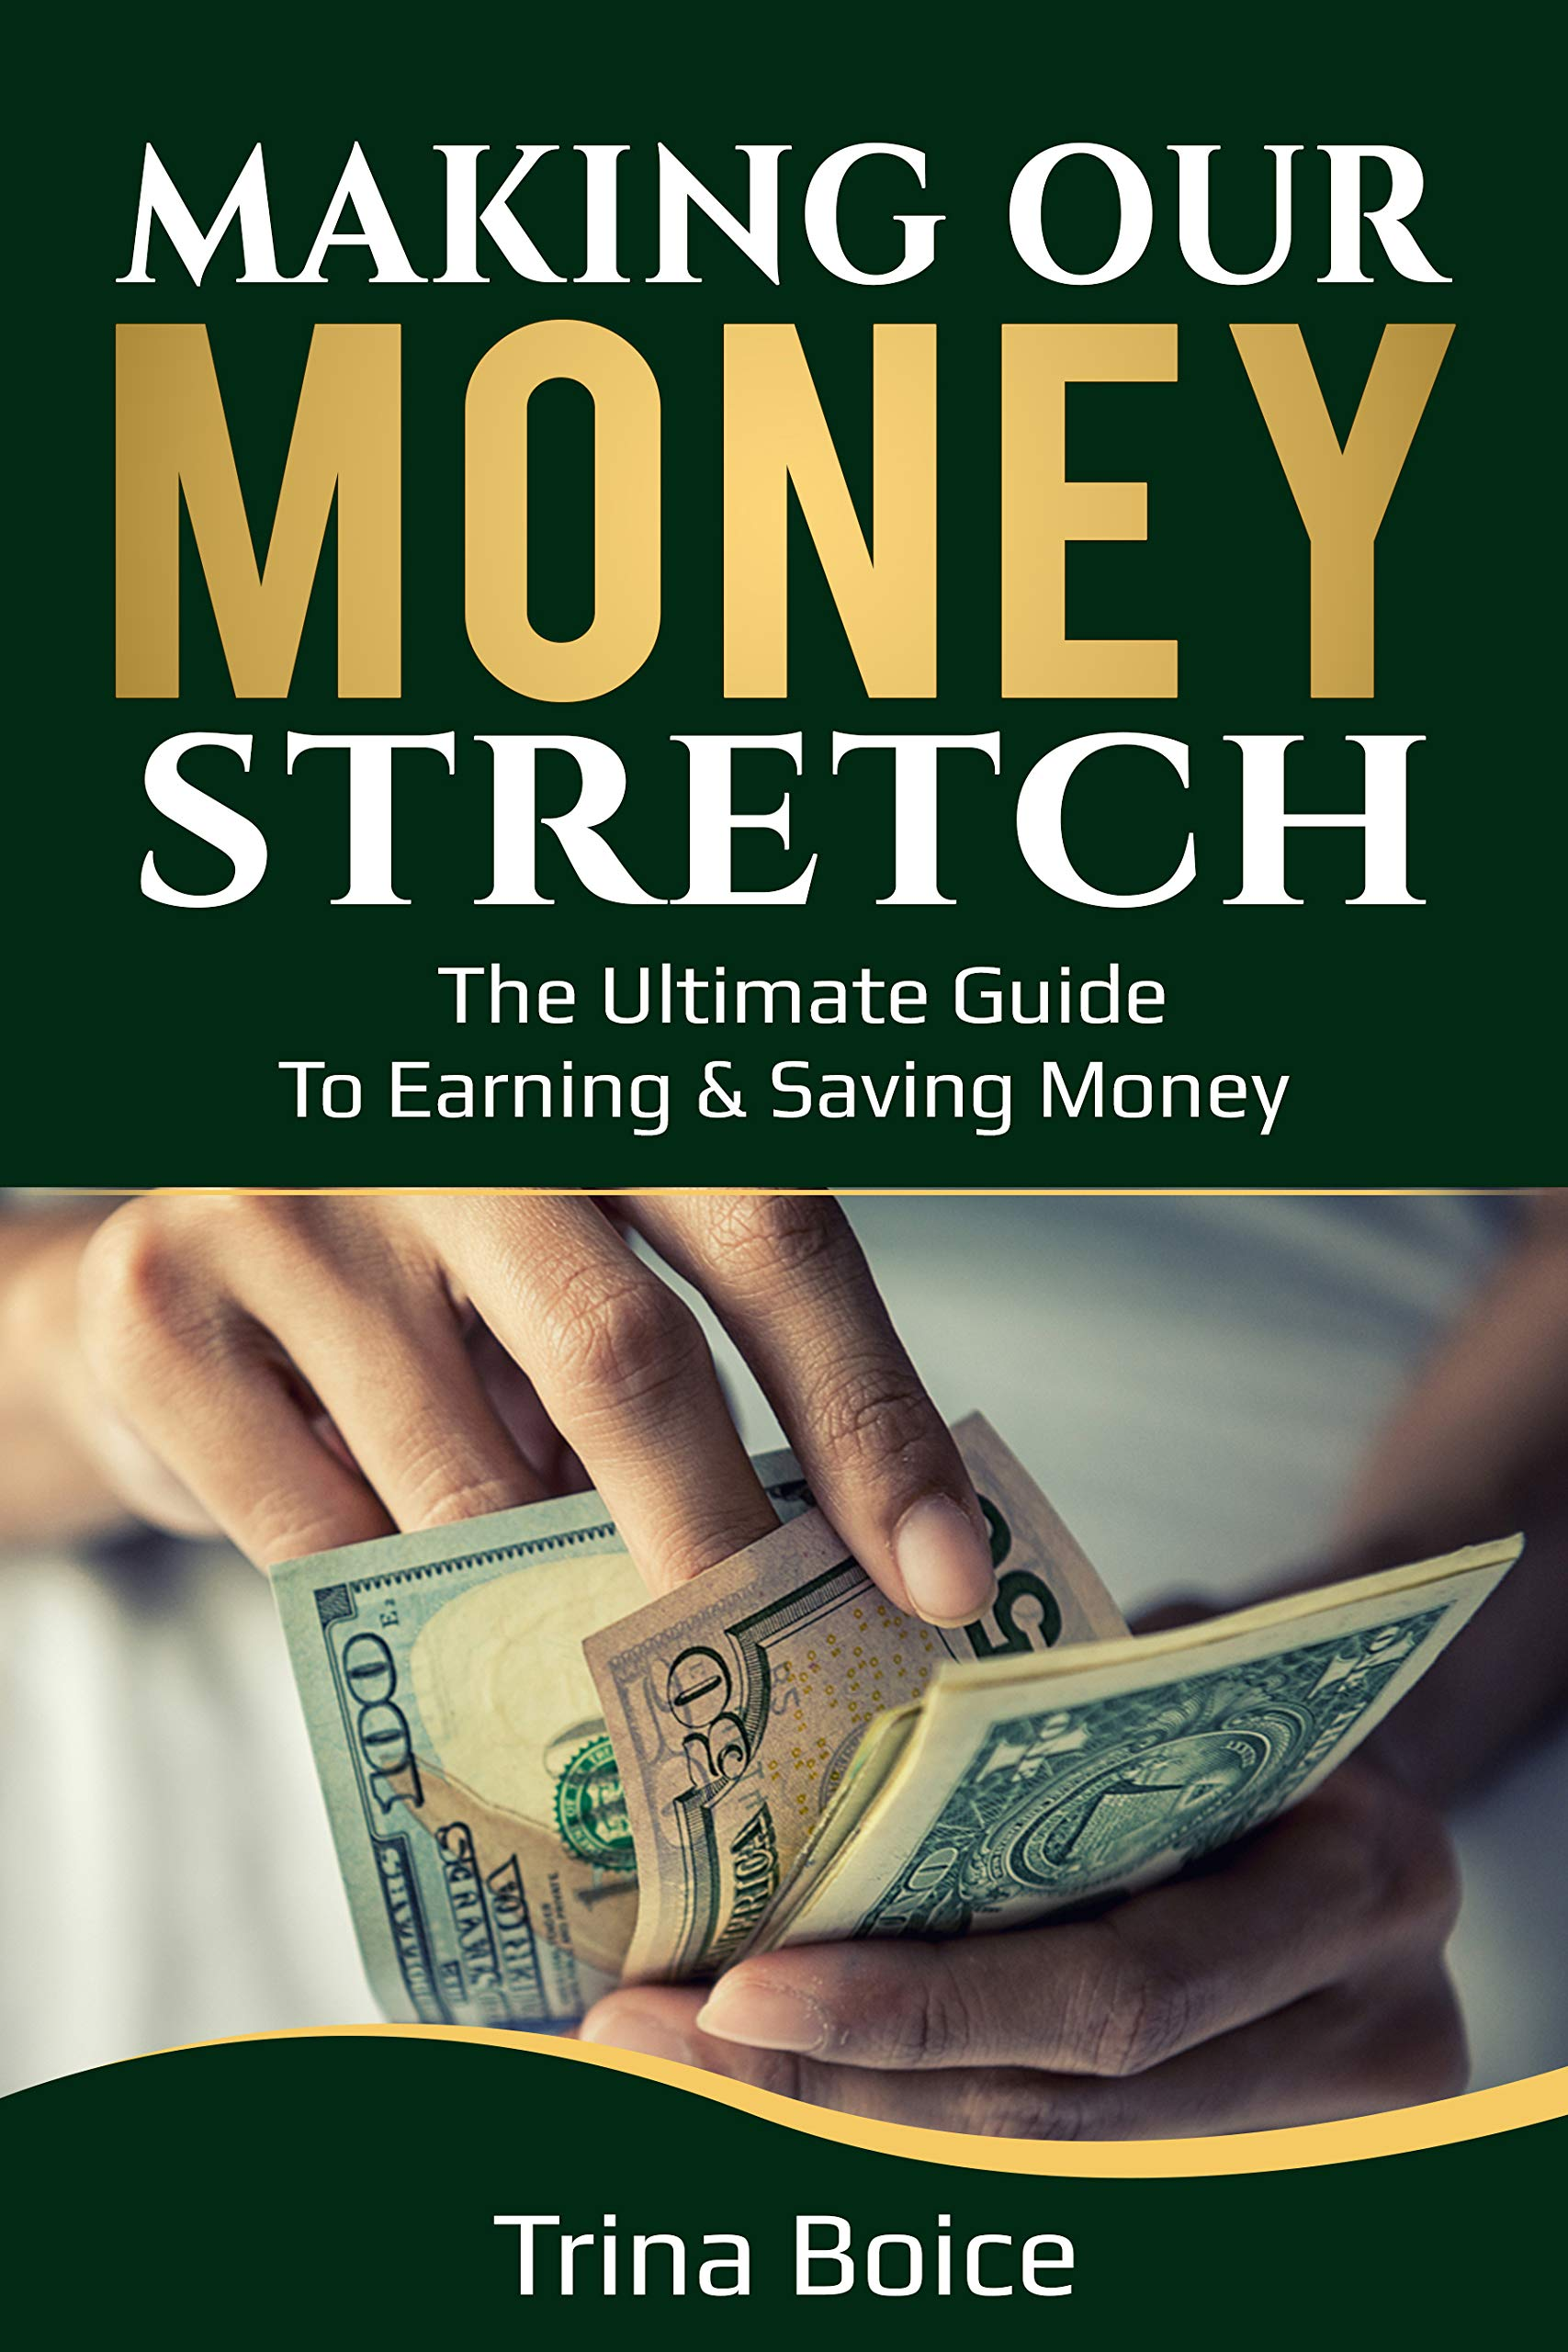 Making Our Money Stretch: The Ultimate Guide to Earning & Saving Money